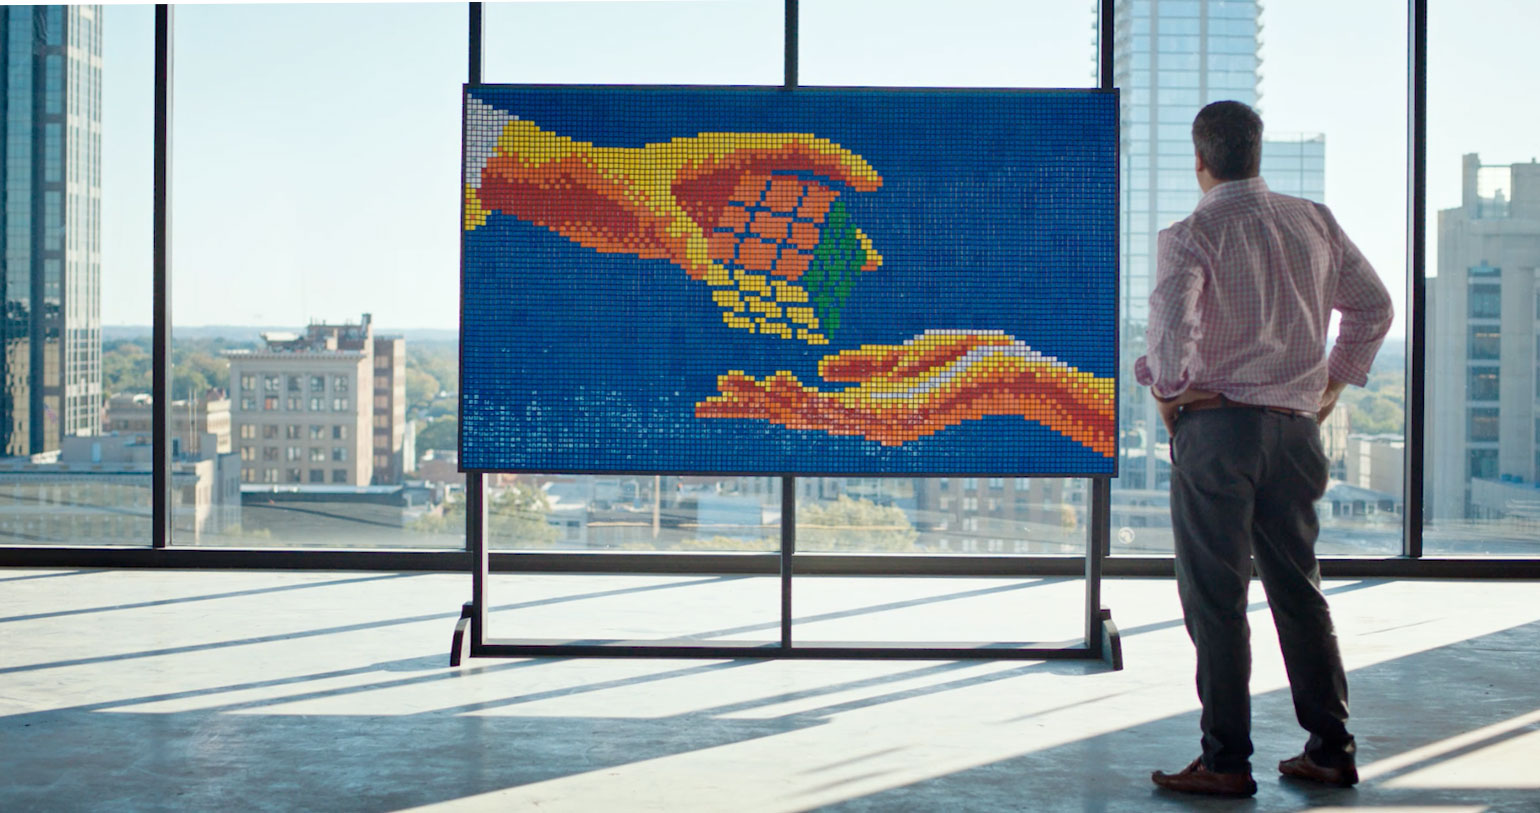 CloudFactory and Rubik's Cube® Mural